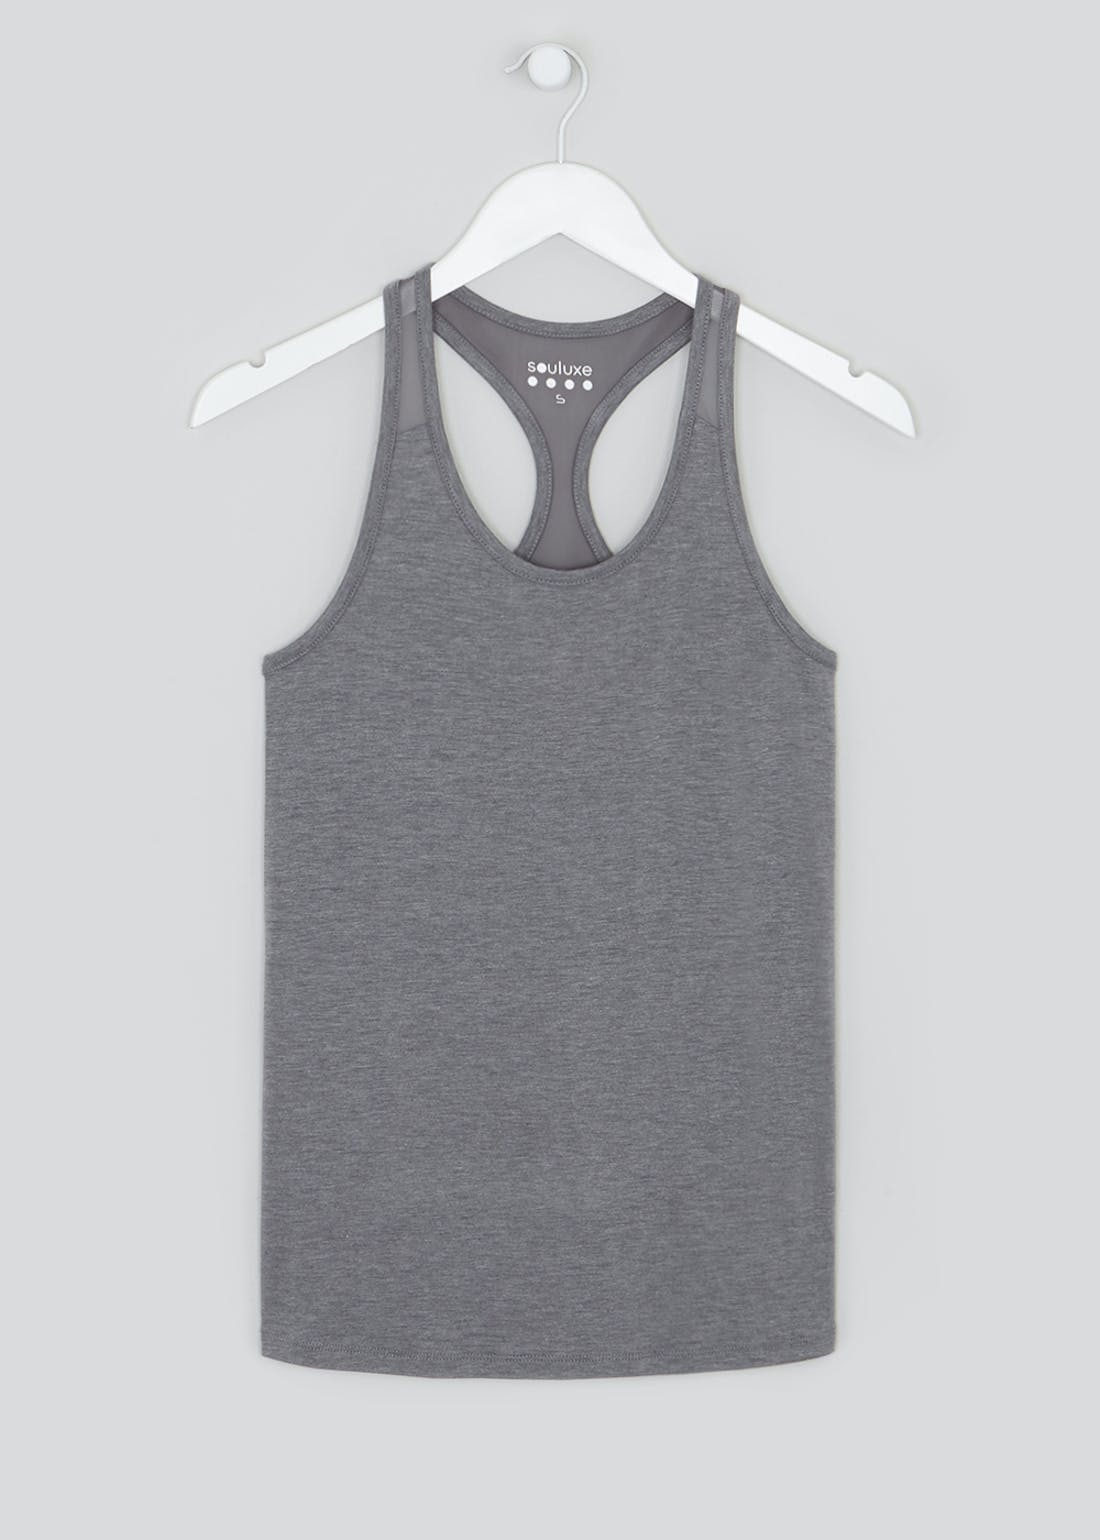 Souluxe Grey Racer Back Gym Vest